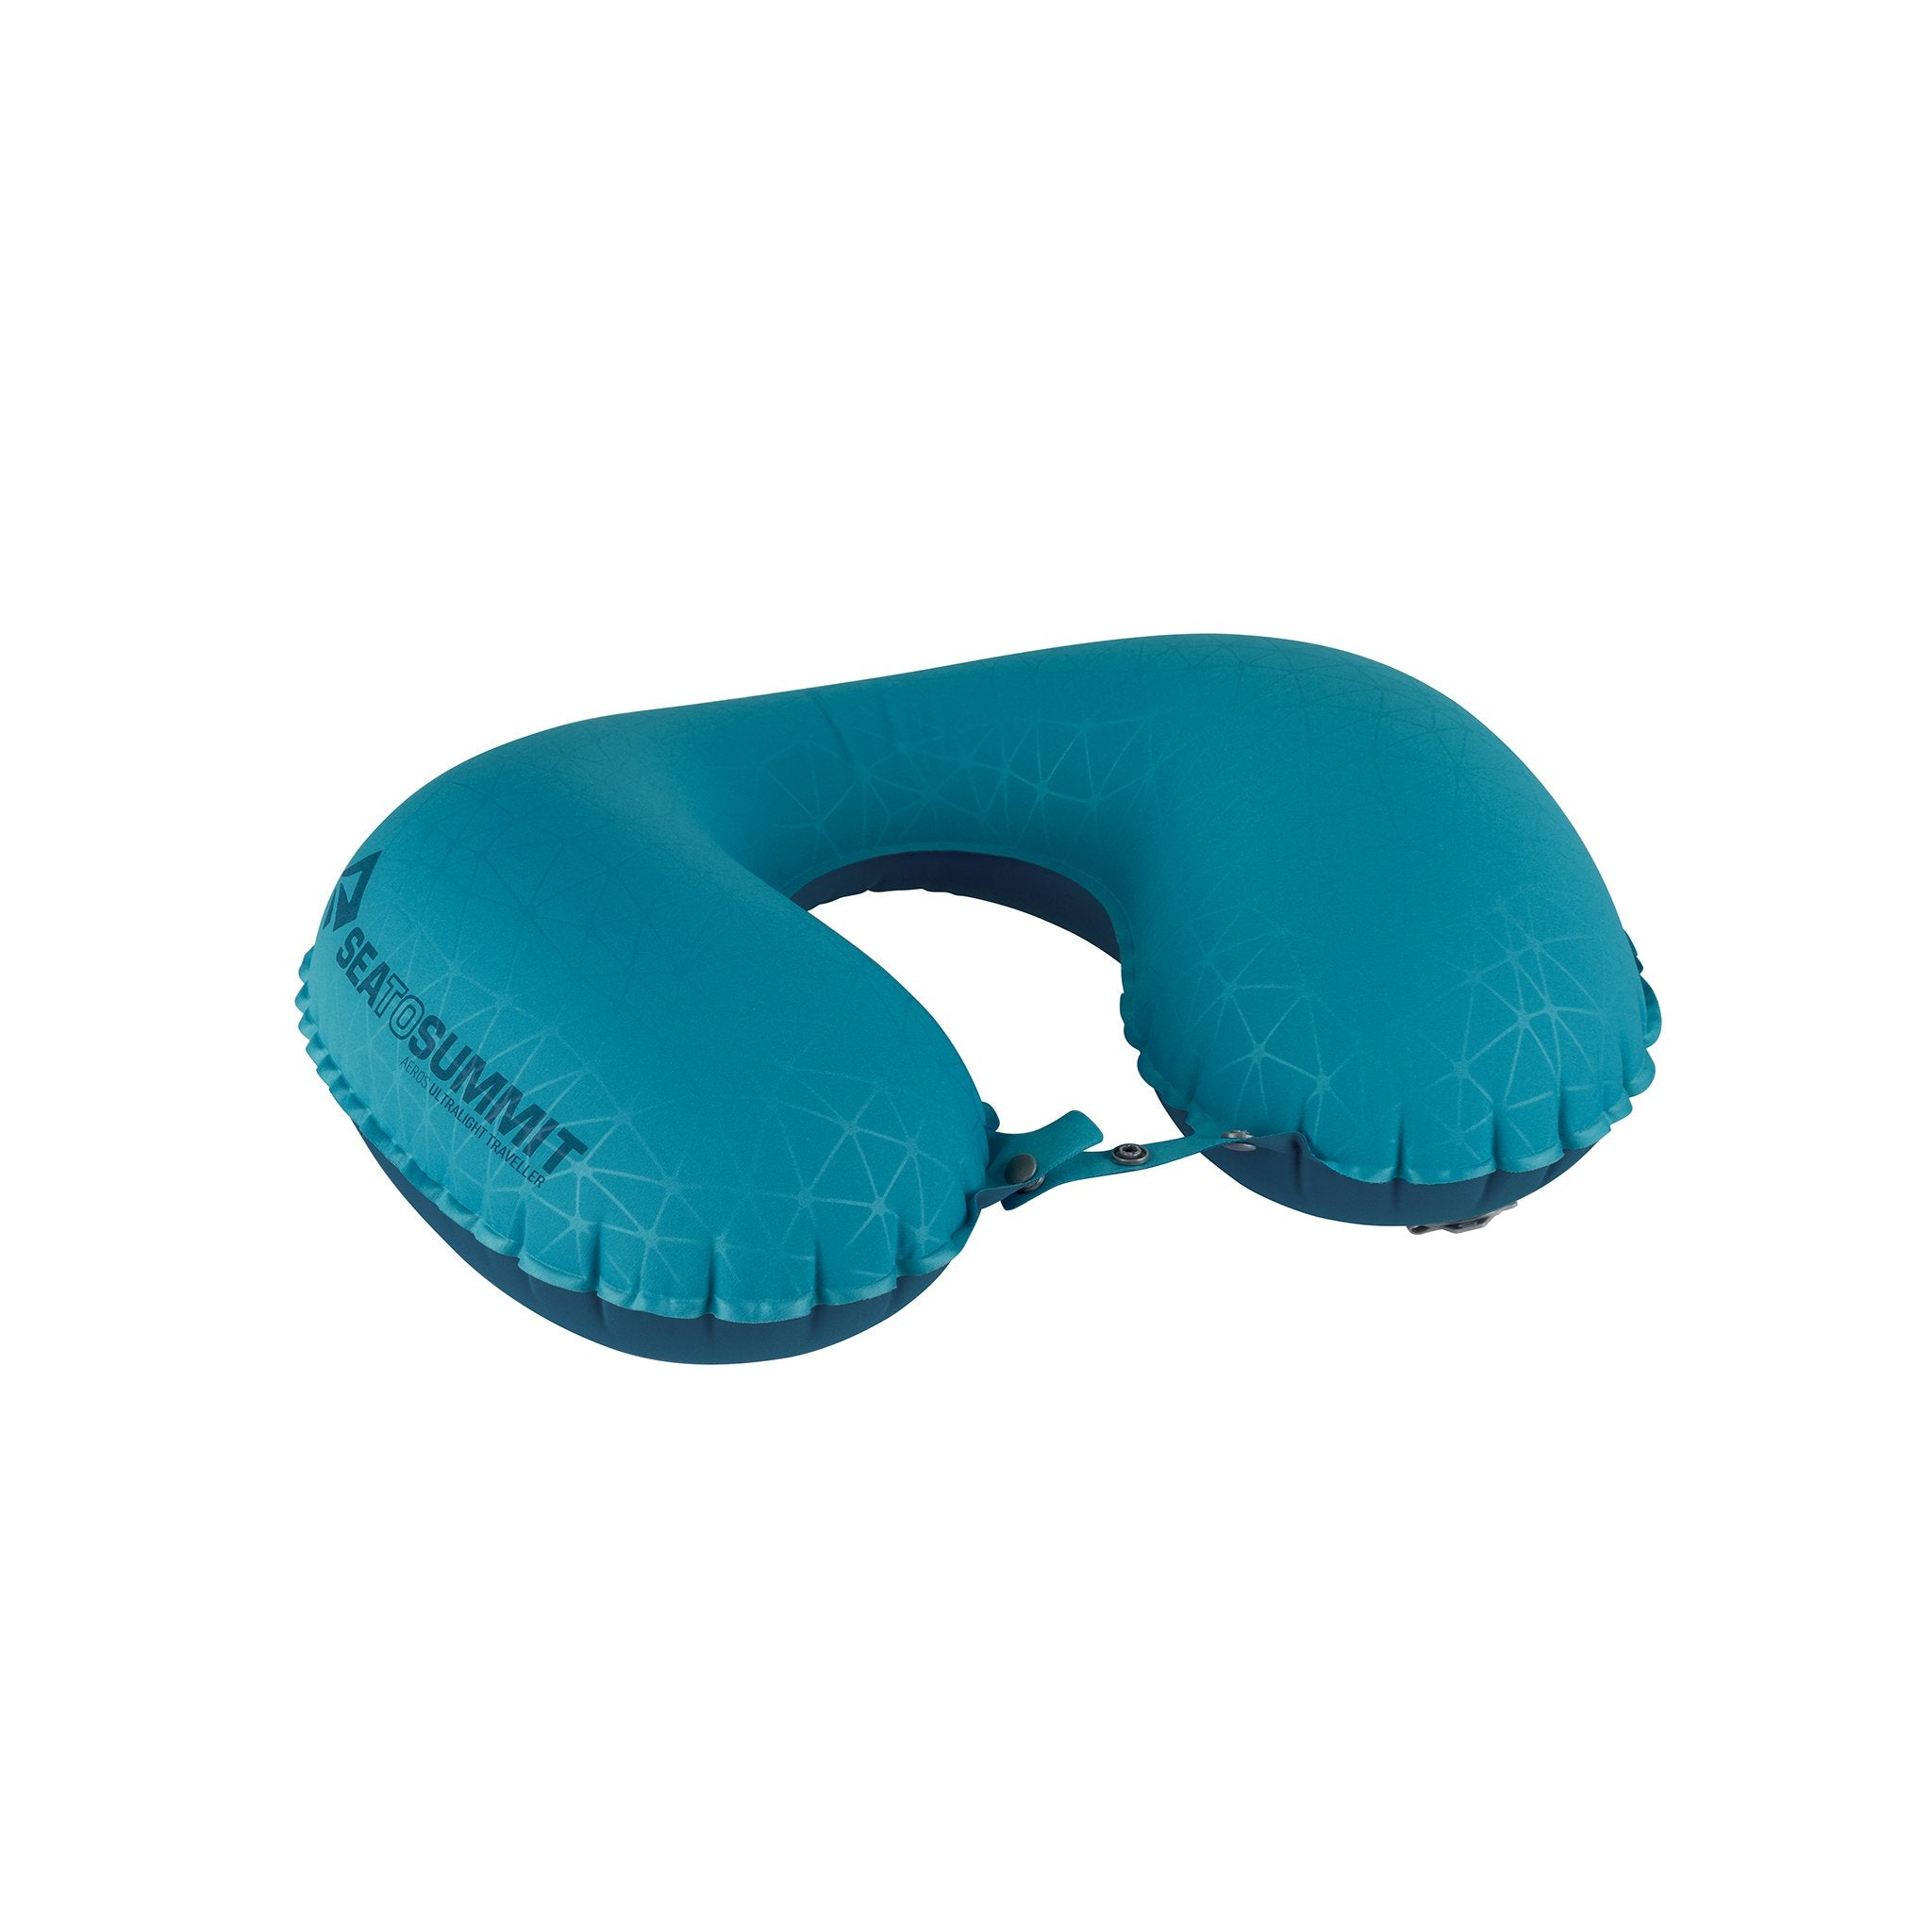 Sea to Summit Aeros Pillow Ultralight Traveler